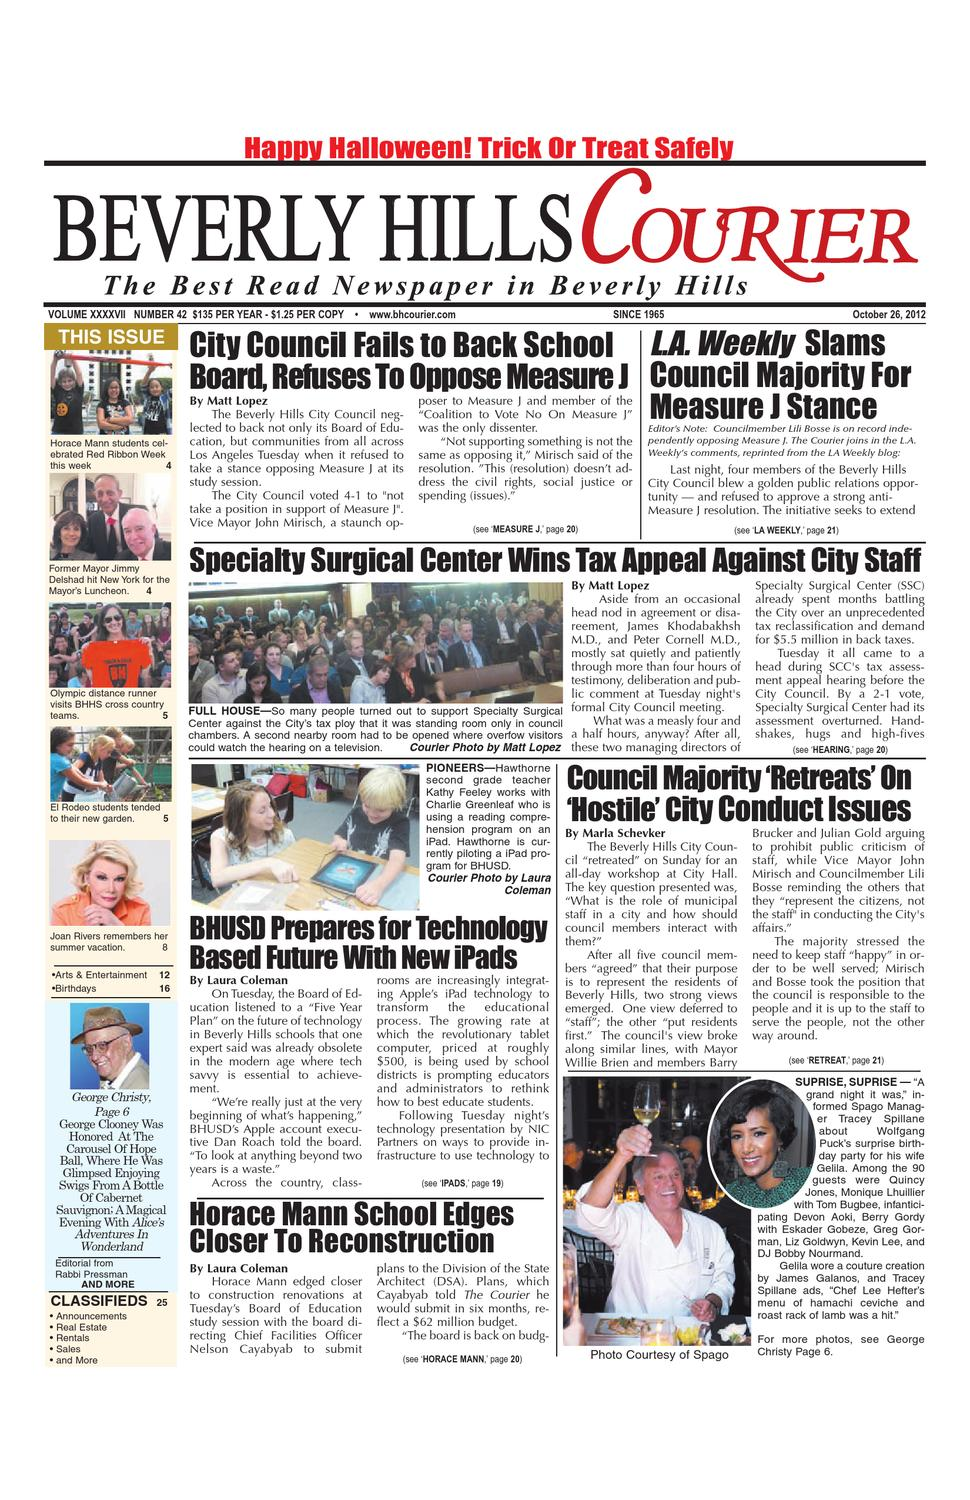 BH Courier 10-26-2012 E-edition by The Beverly Hills Courier - issuu